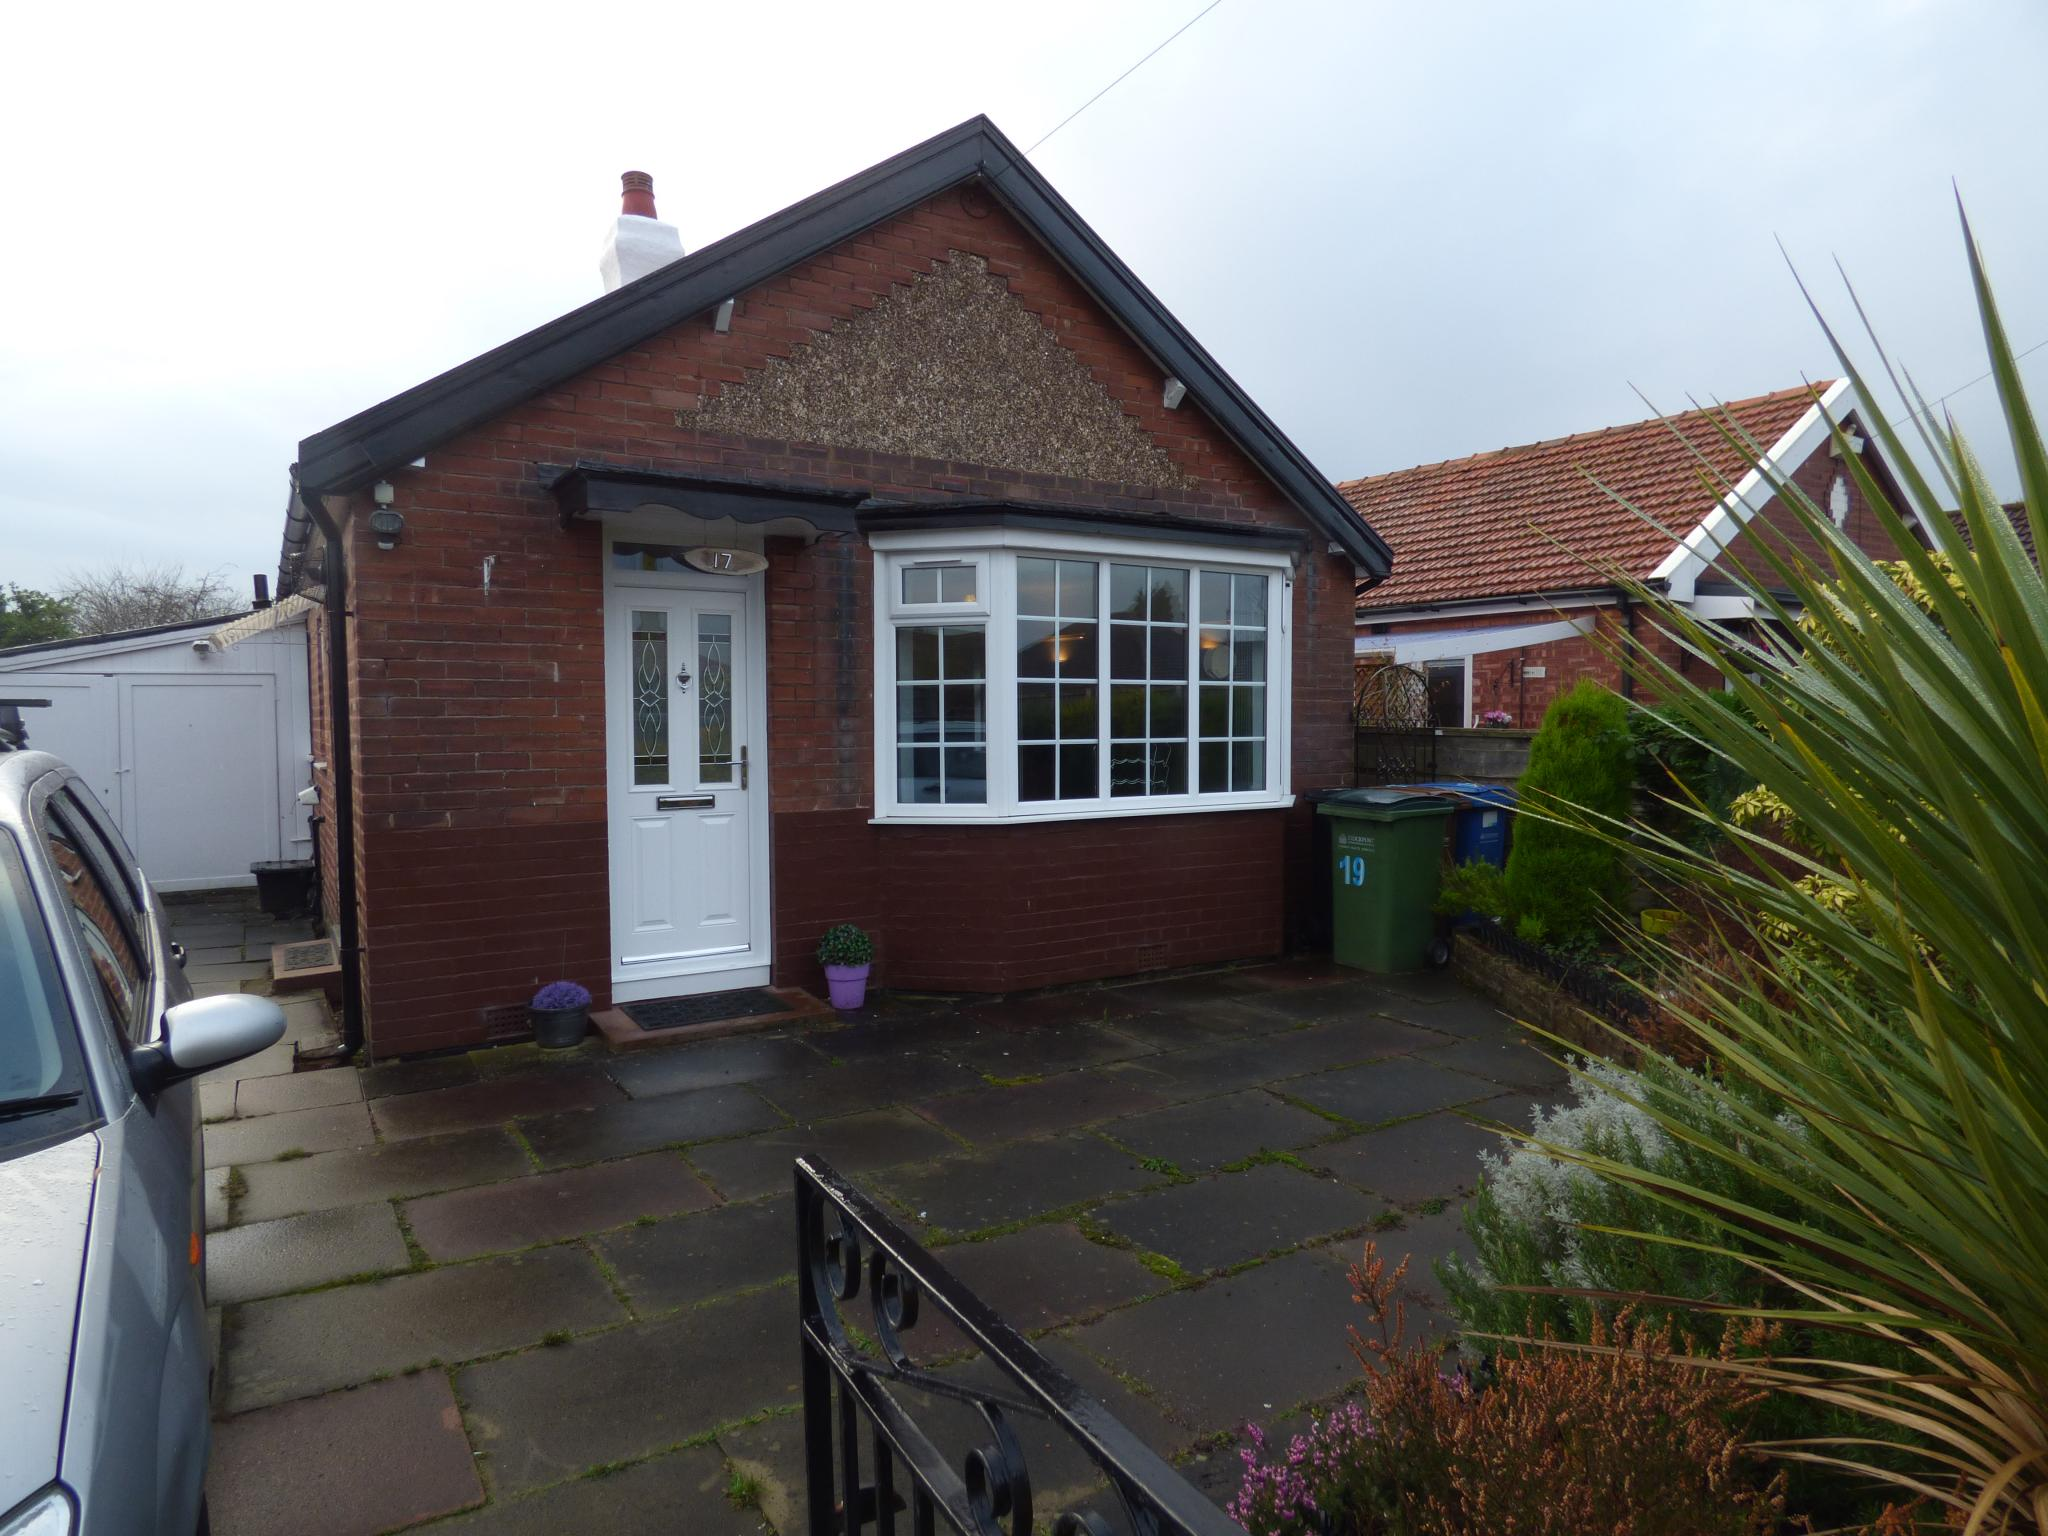 2 bedroom detached bungalow for sale in 17 richmond grove for 2 bedroom bungalow